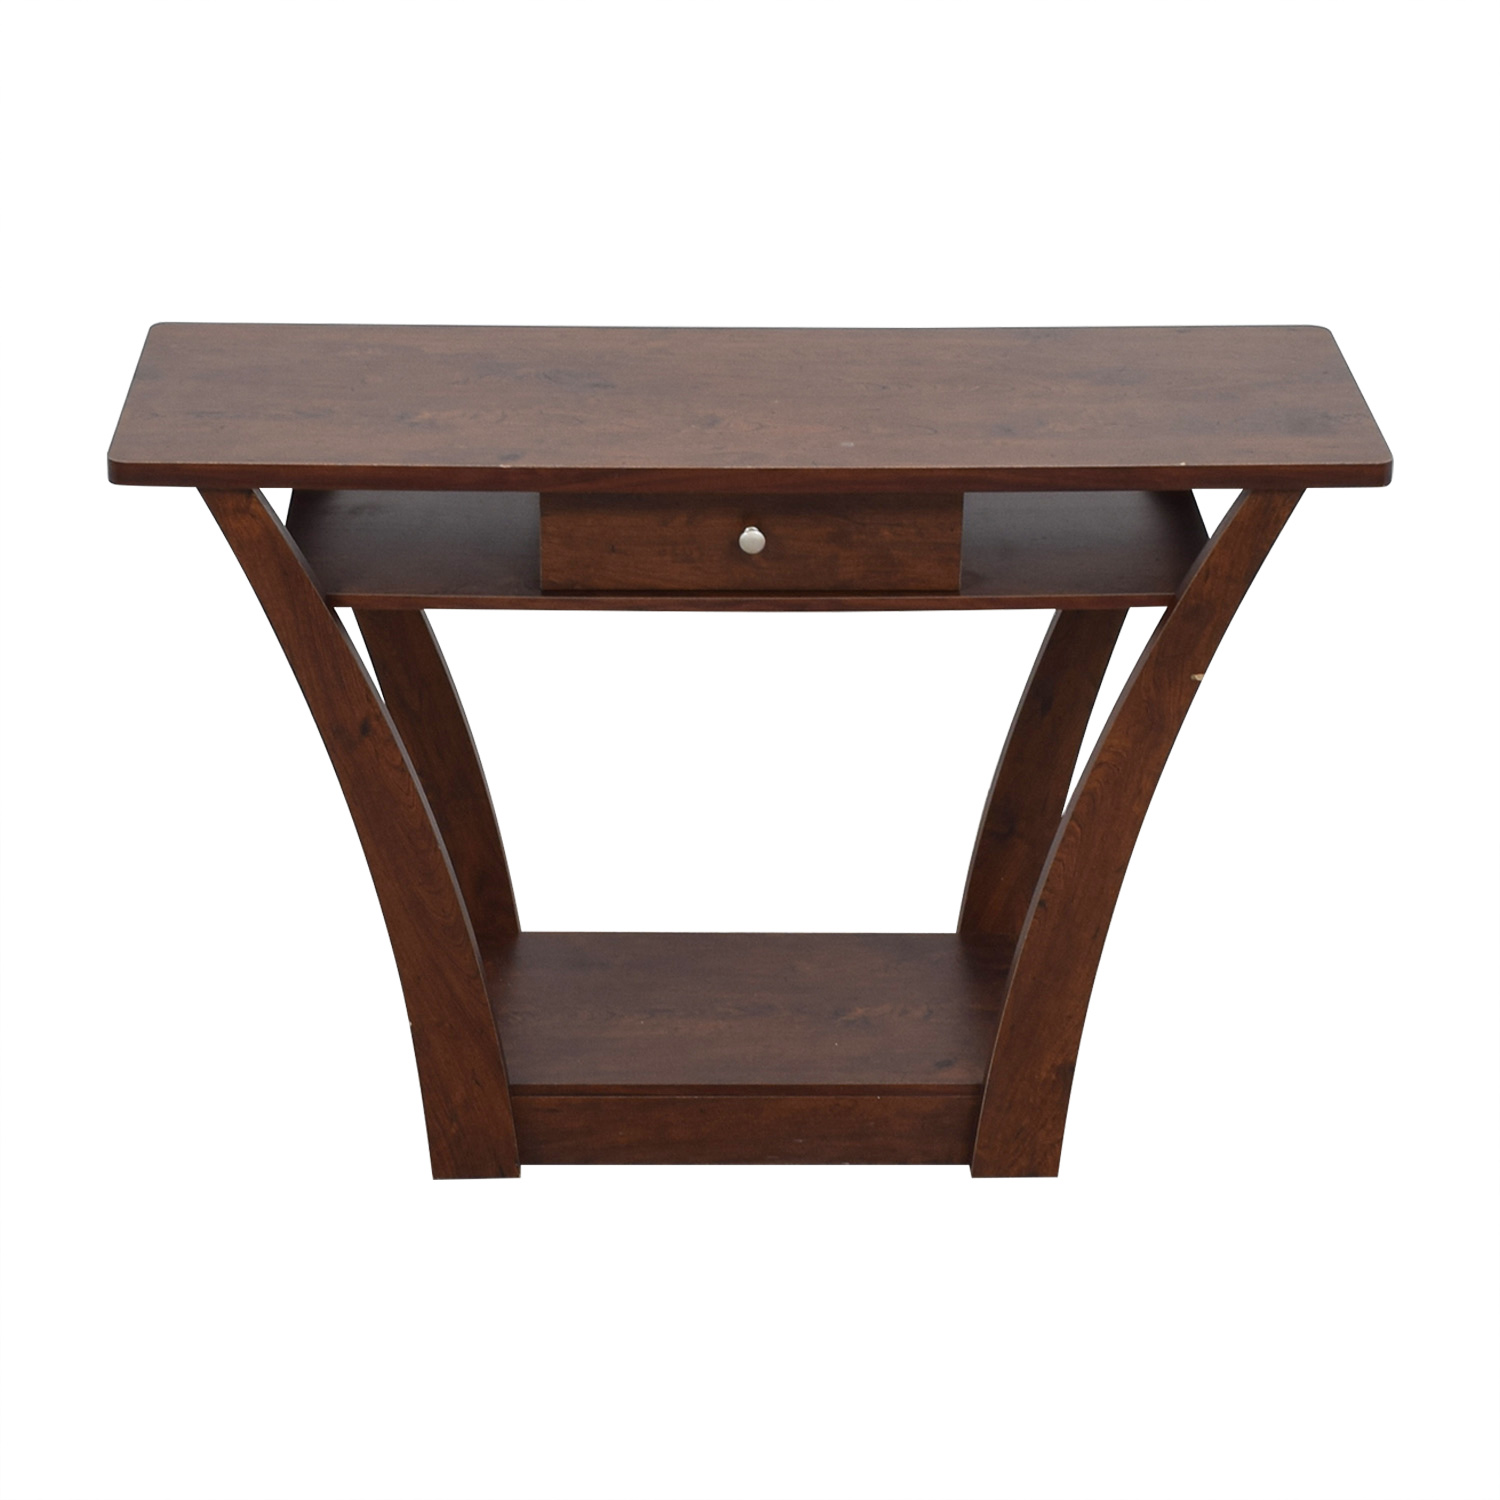 shop Wayfair Wayfair Wood Single Drawer Console Table online